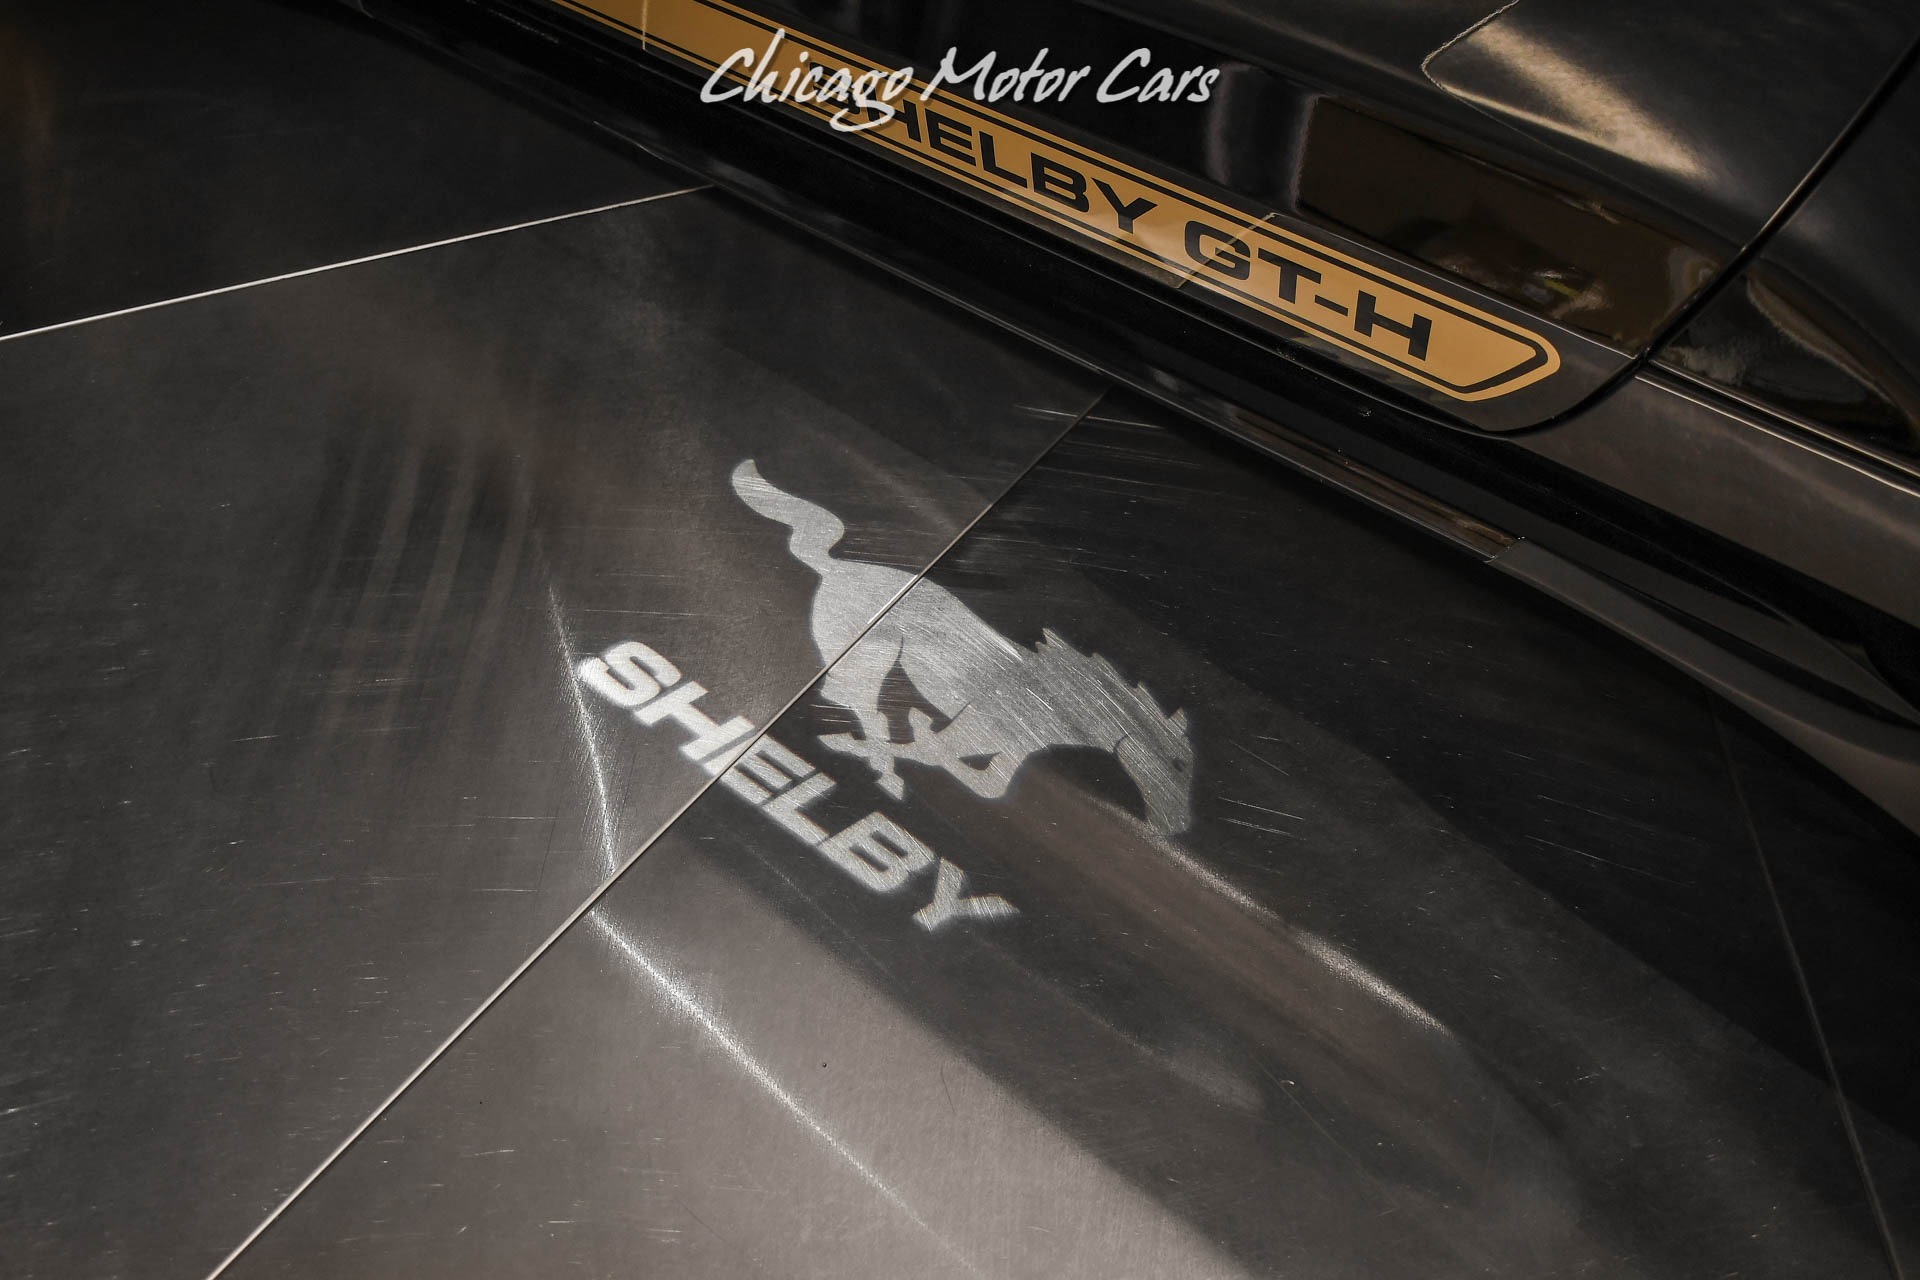 Used-2019-Ford-Mustang-Shelby-GT-H-Rare-Heritage-Edition-Supercharged-Low-Miles